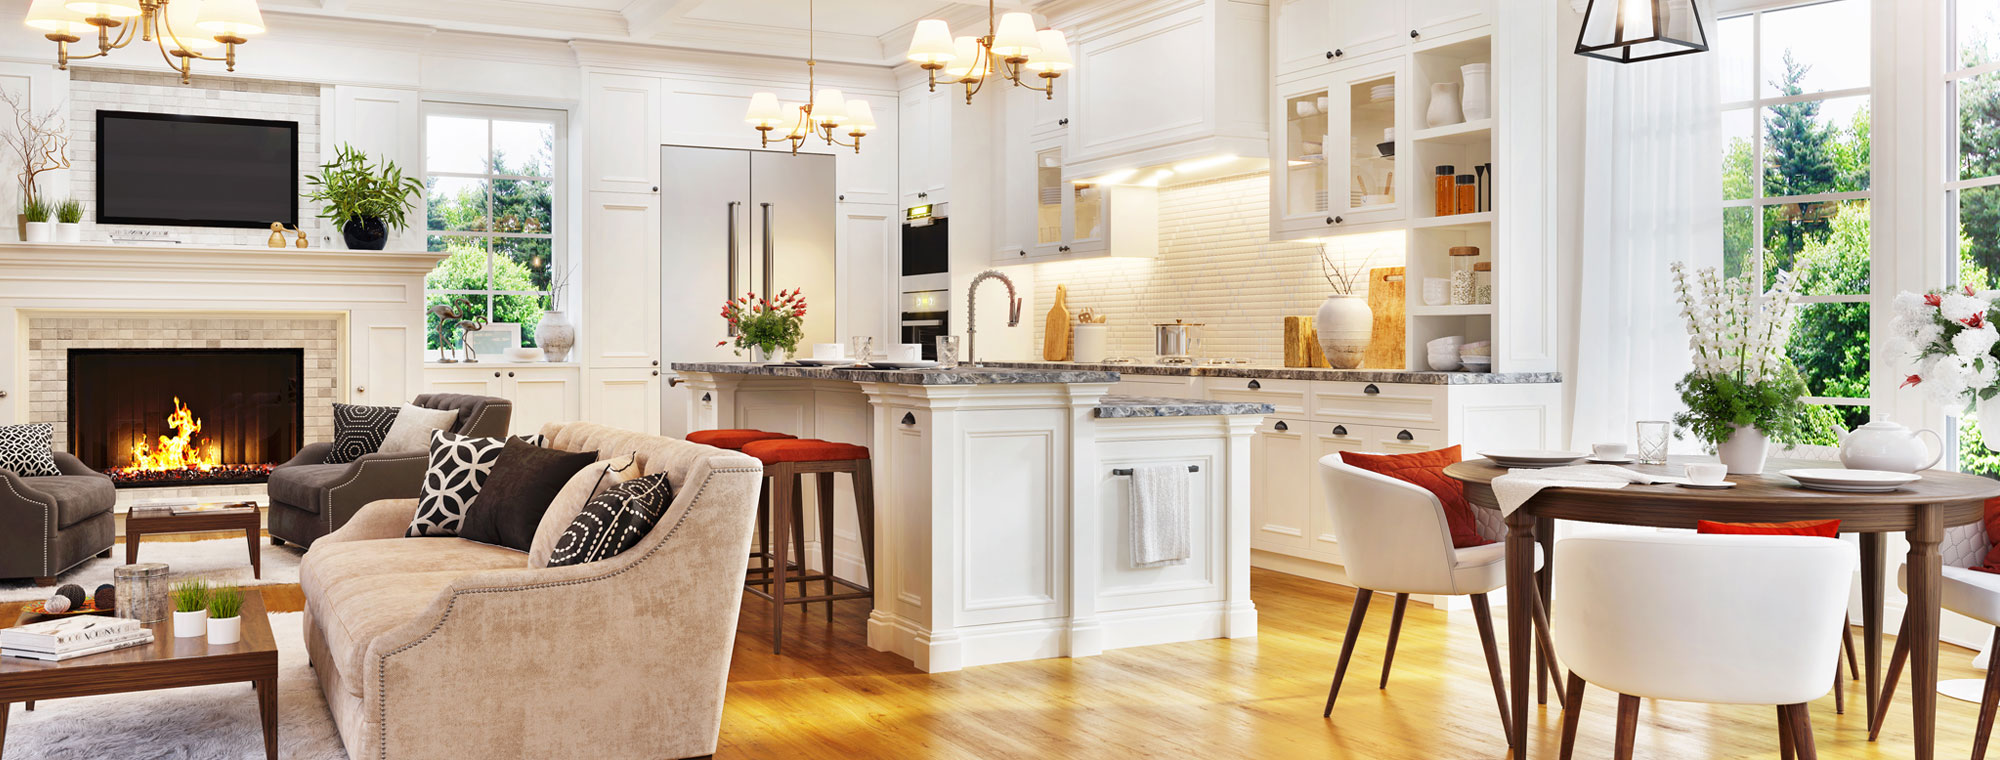 Financing your kitchen or bath remodel